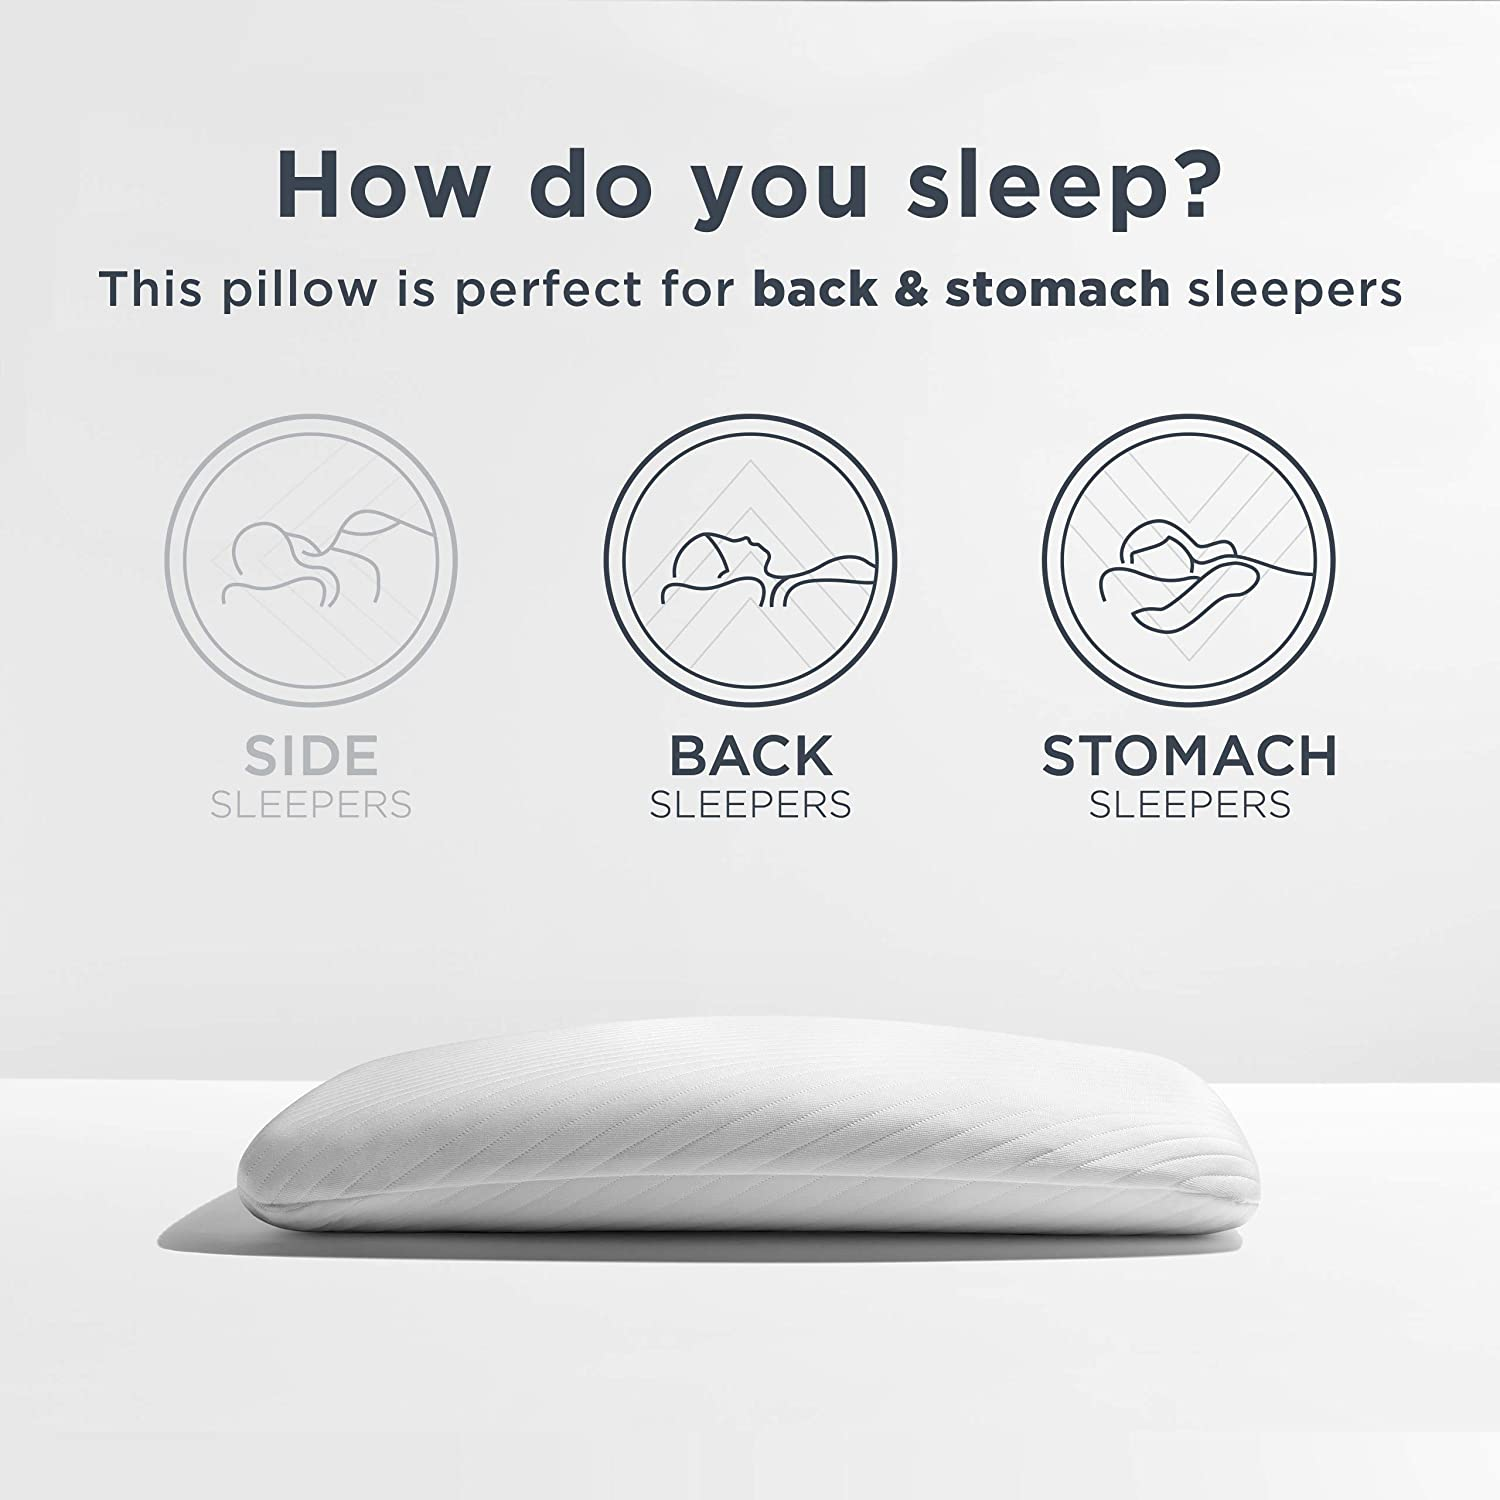 11 Ways To Use A Tempurpedic Pillow With Pictures Tips